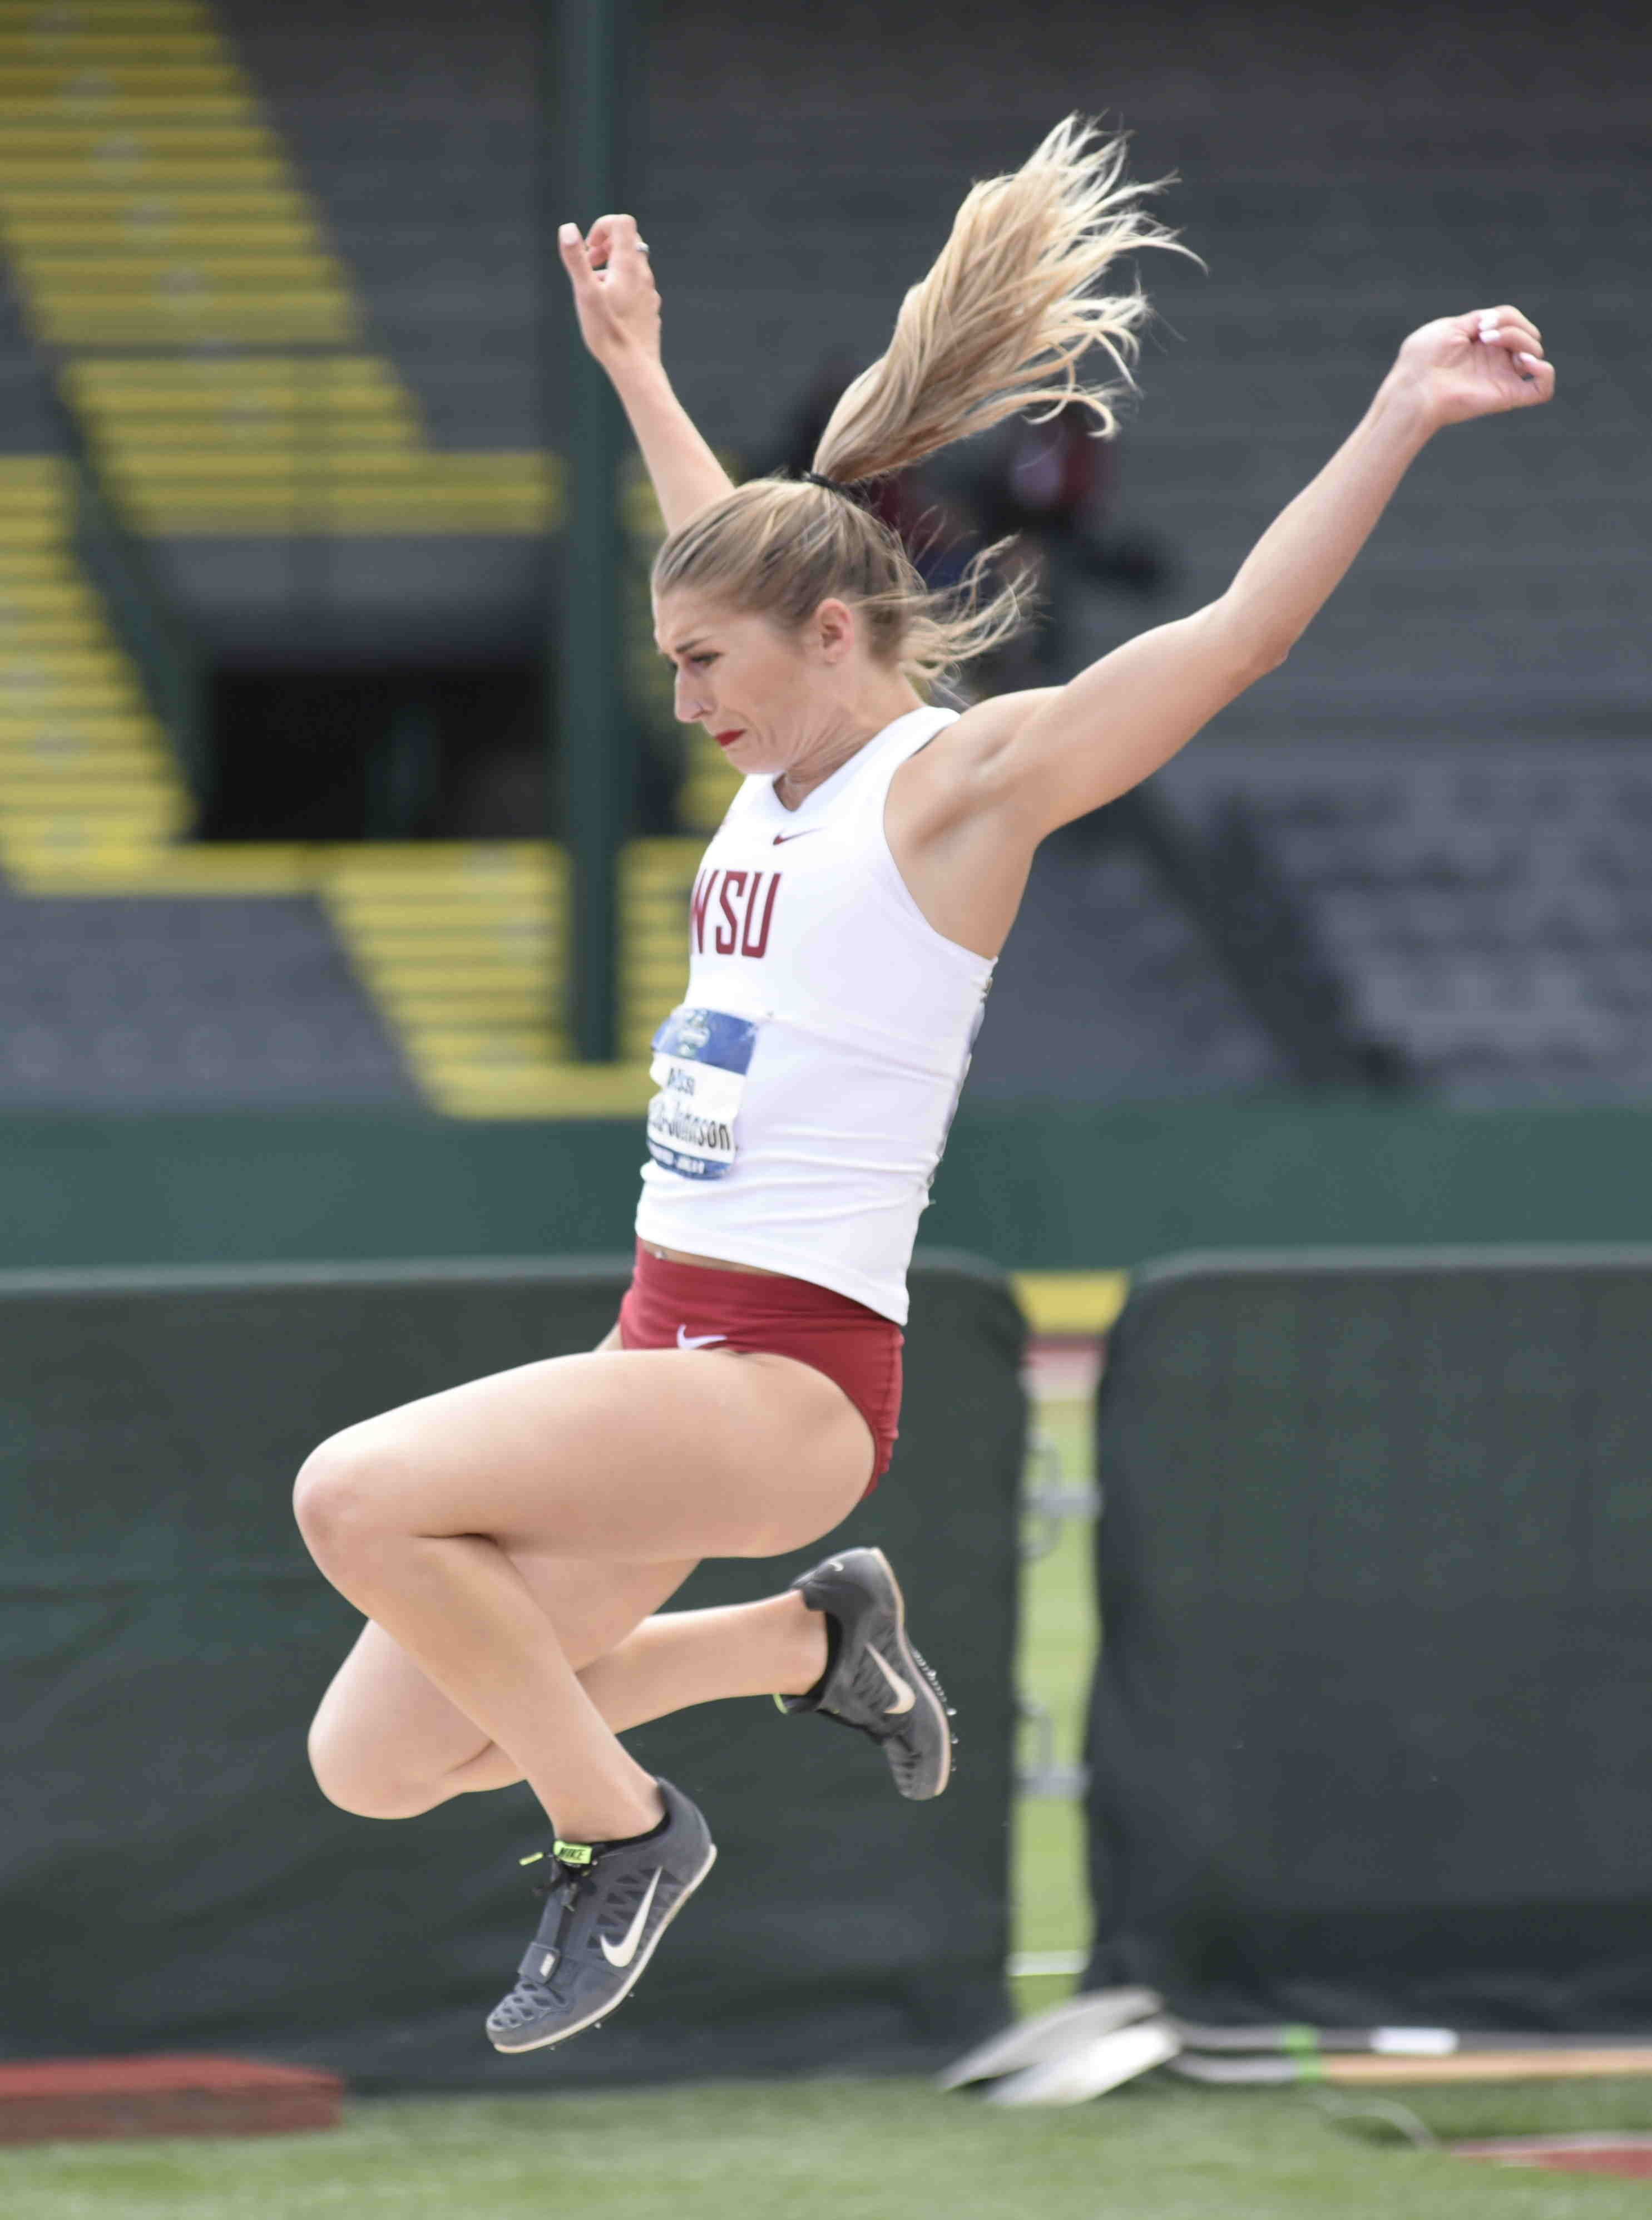 Washington State S Alissa Brooks Johnson Named To Team Usa For Thorpe Cup Team Usa Johnson Athlete